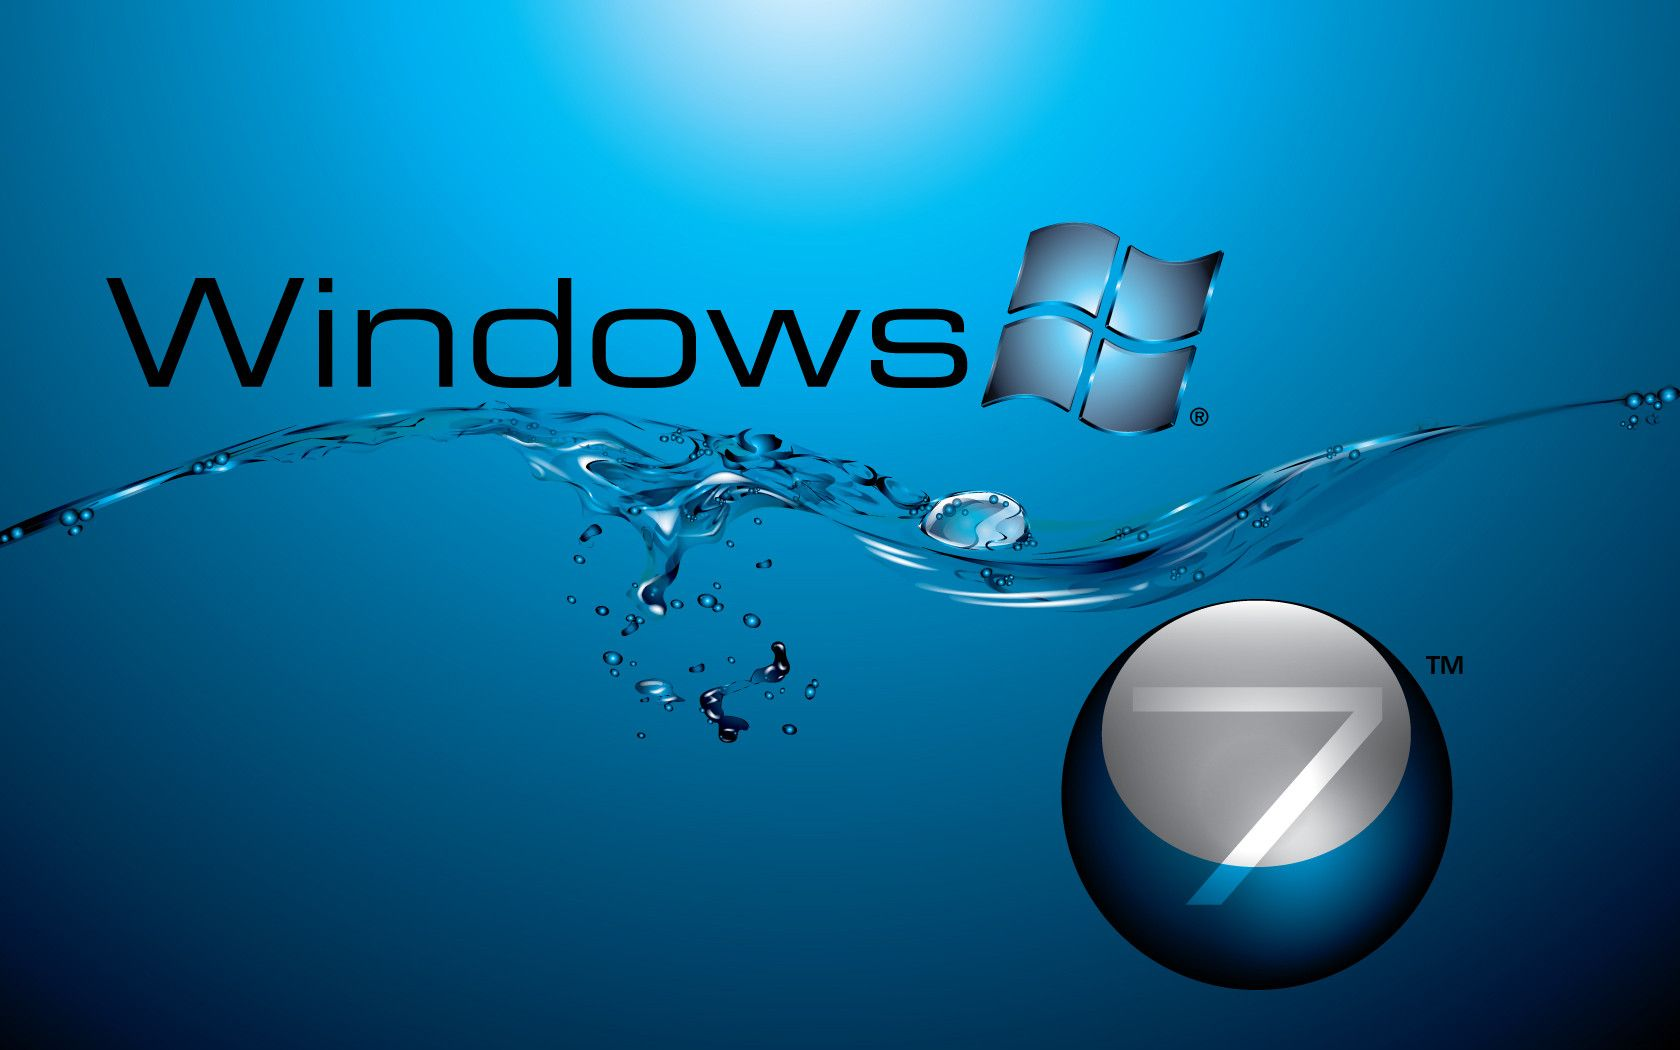 Wallpaper For Windows 7